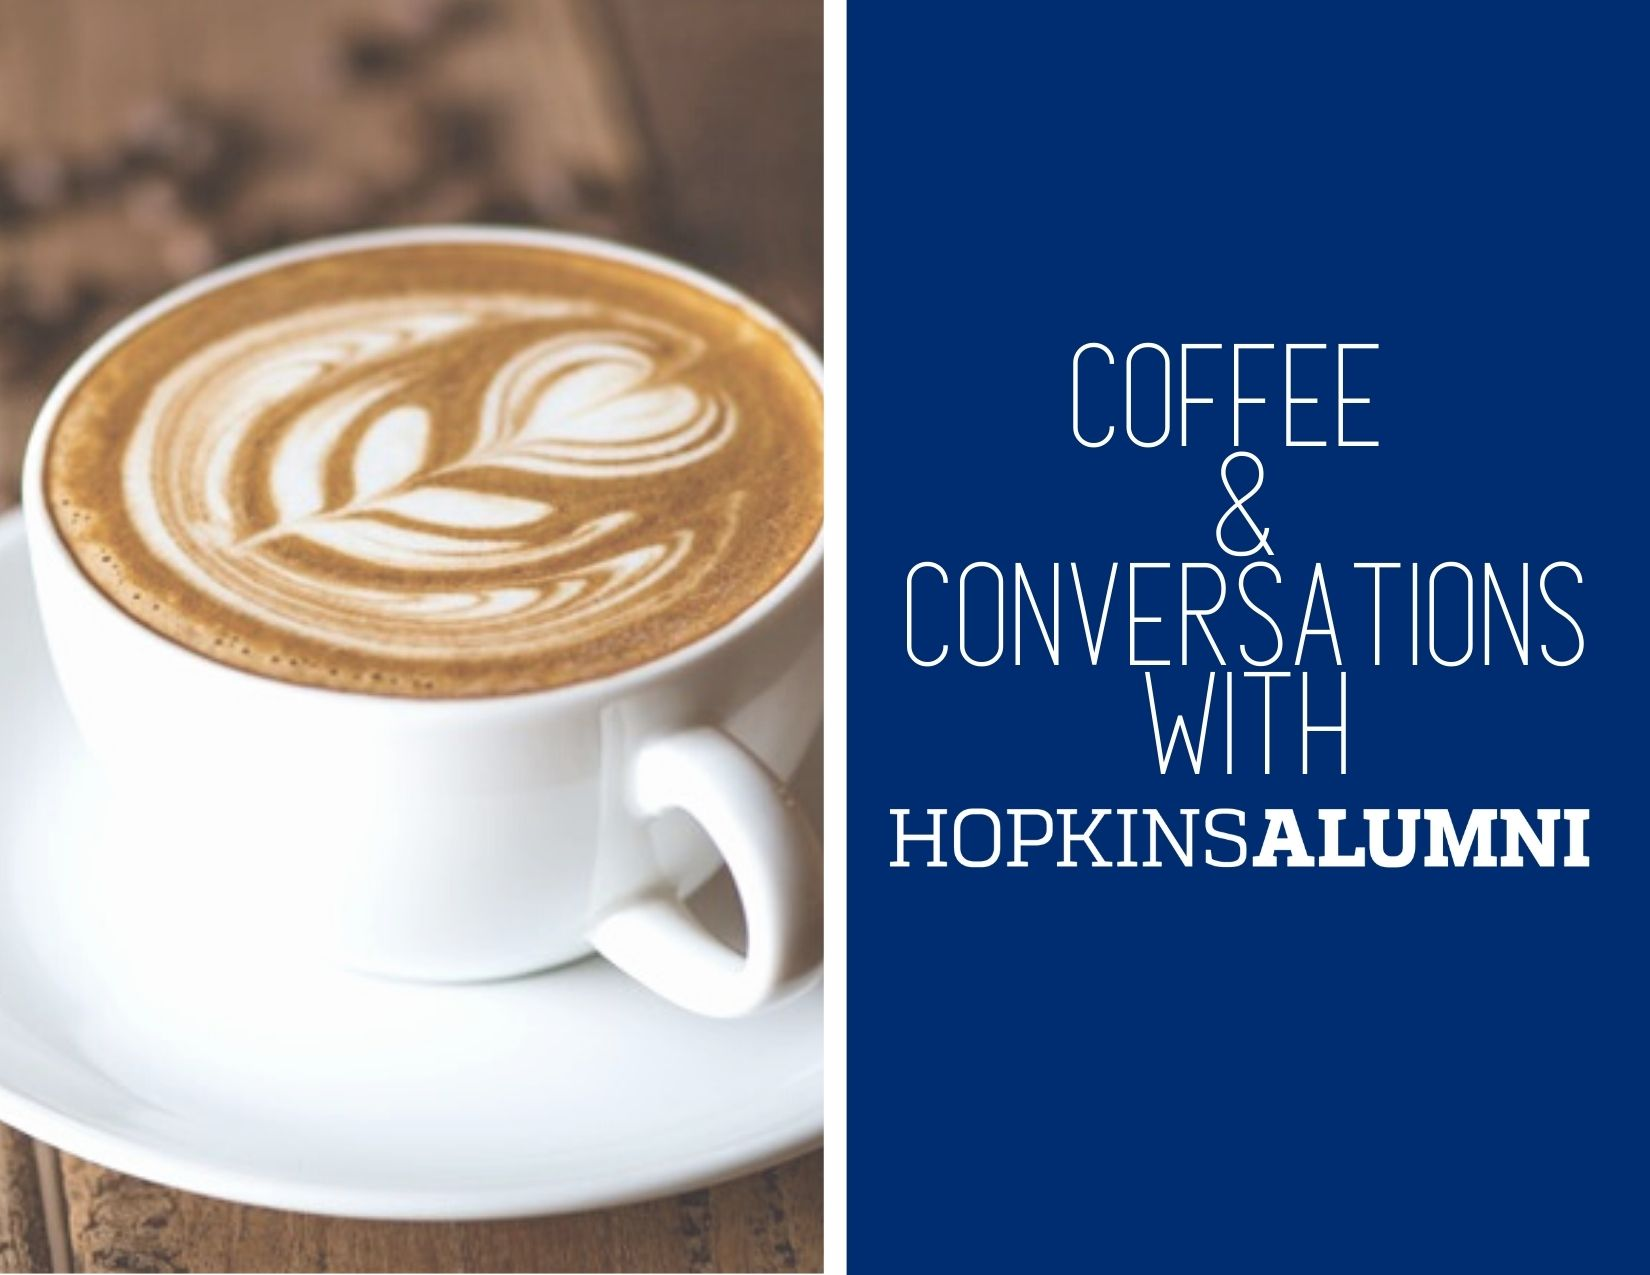 Coffee & Conversations | Small Group Connections header image